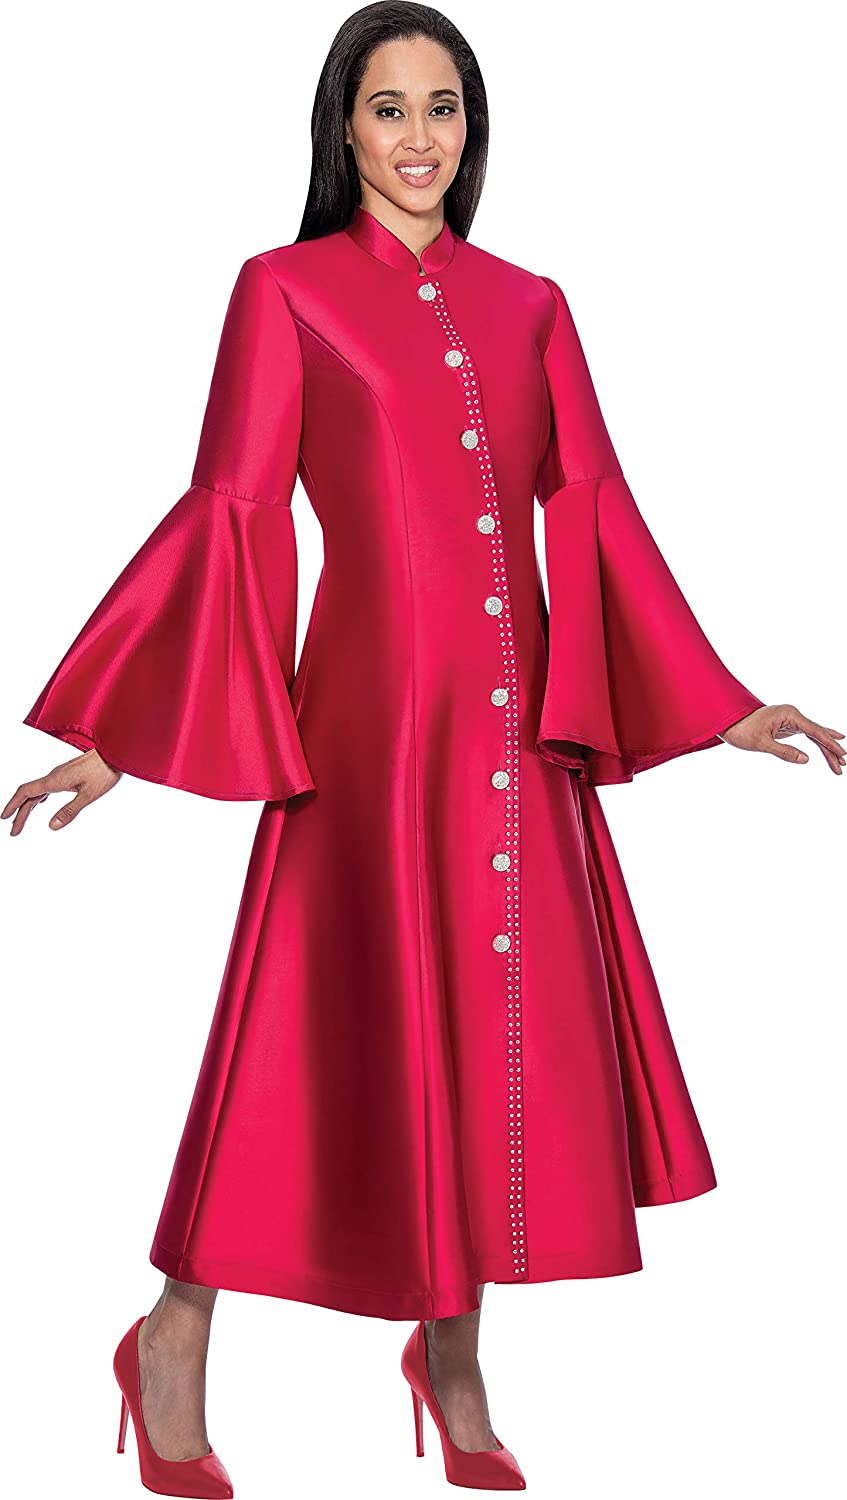 0f504f43744 Plus Size Elegant Church Robe Featuring Rhinestone Buttons and Trim Detail  Mandarin Collar and Flared Sleeves